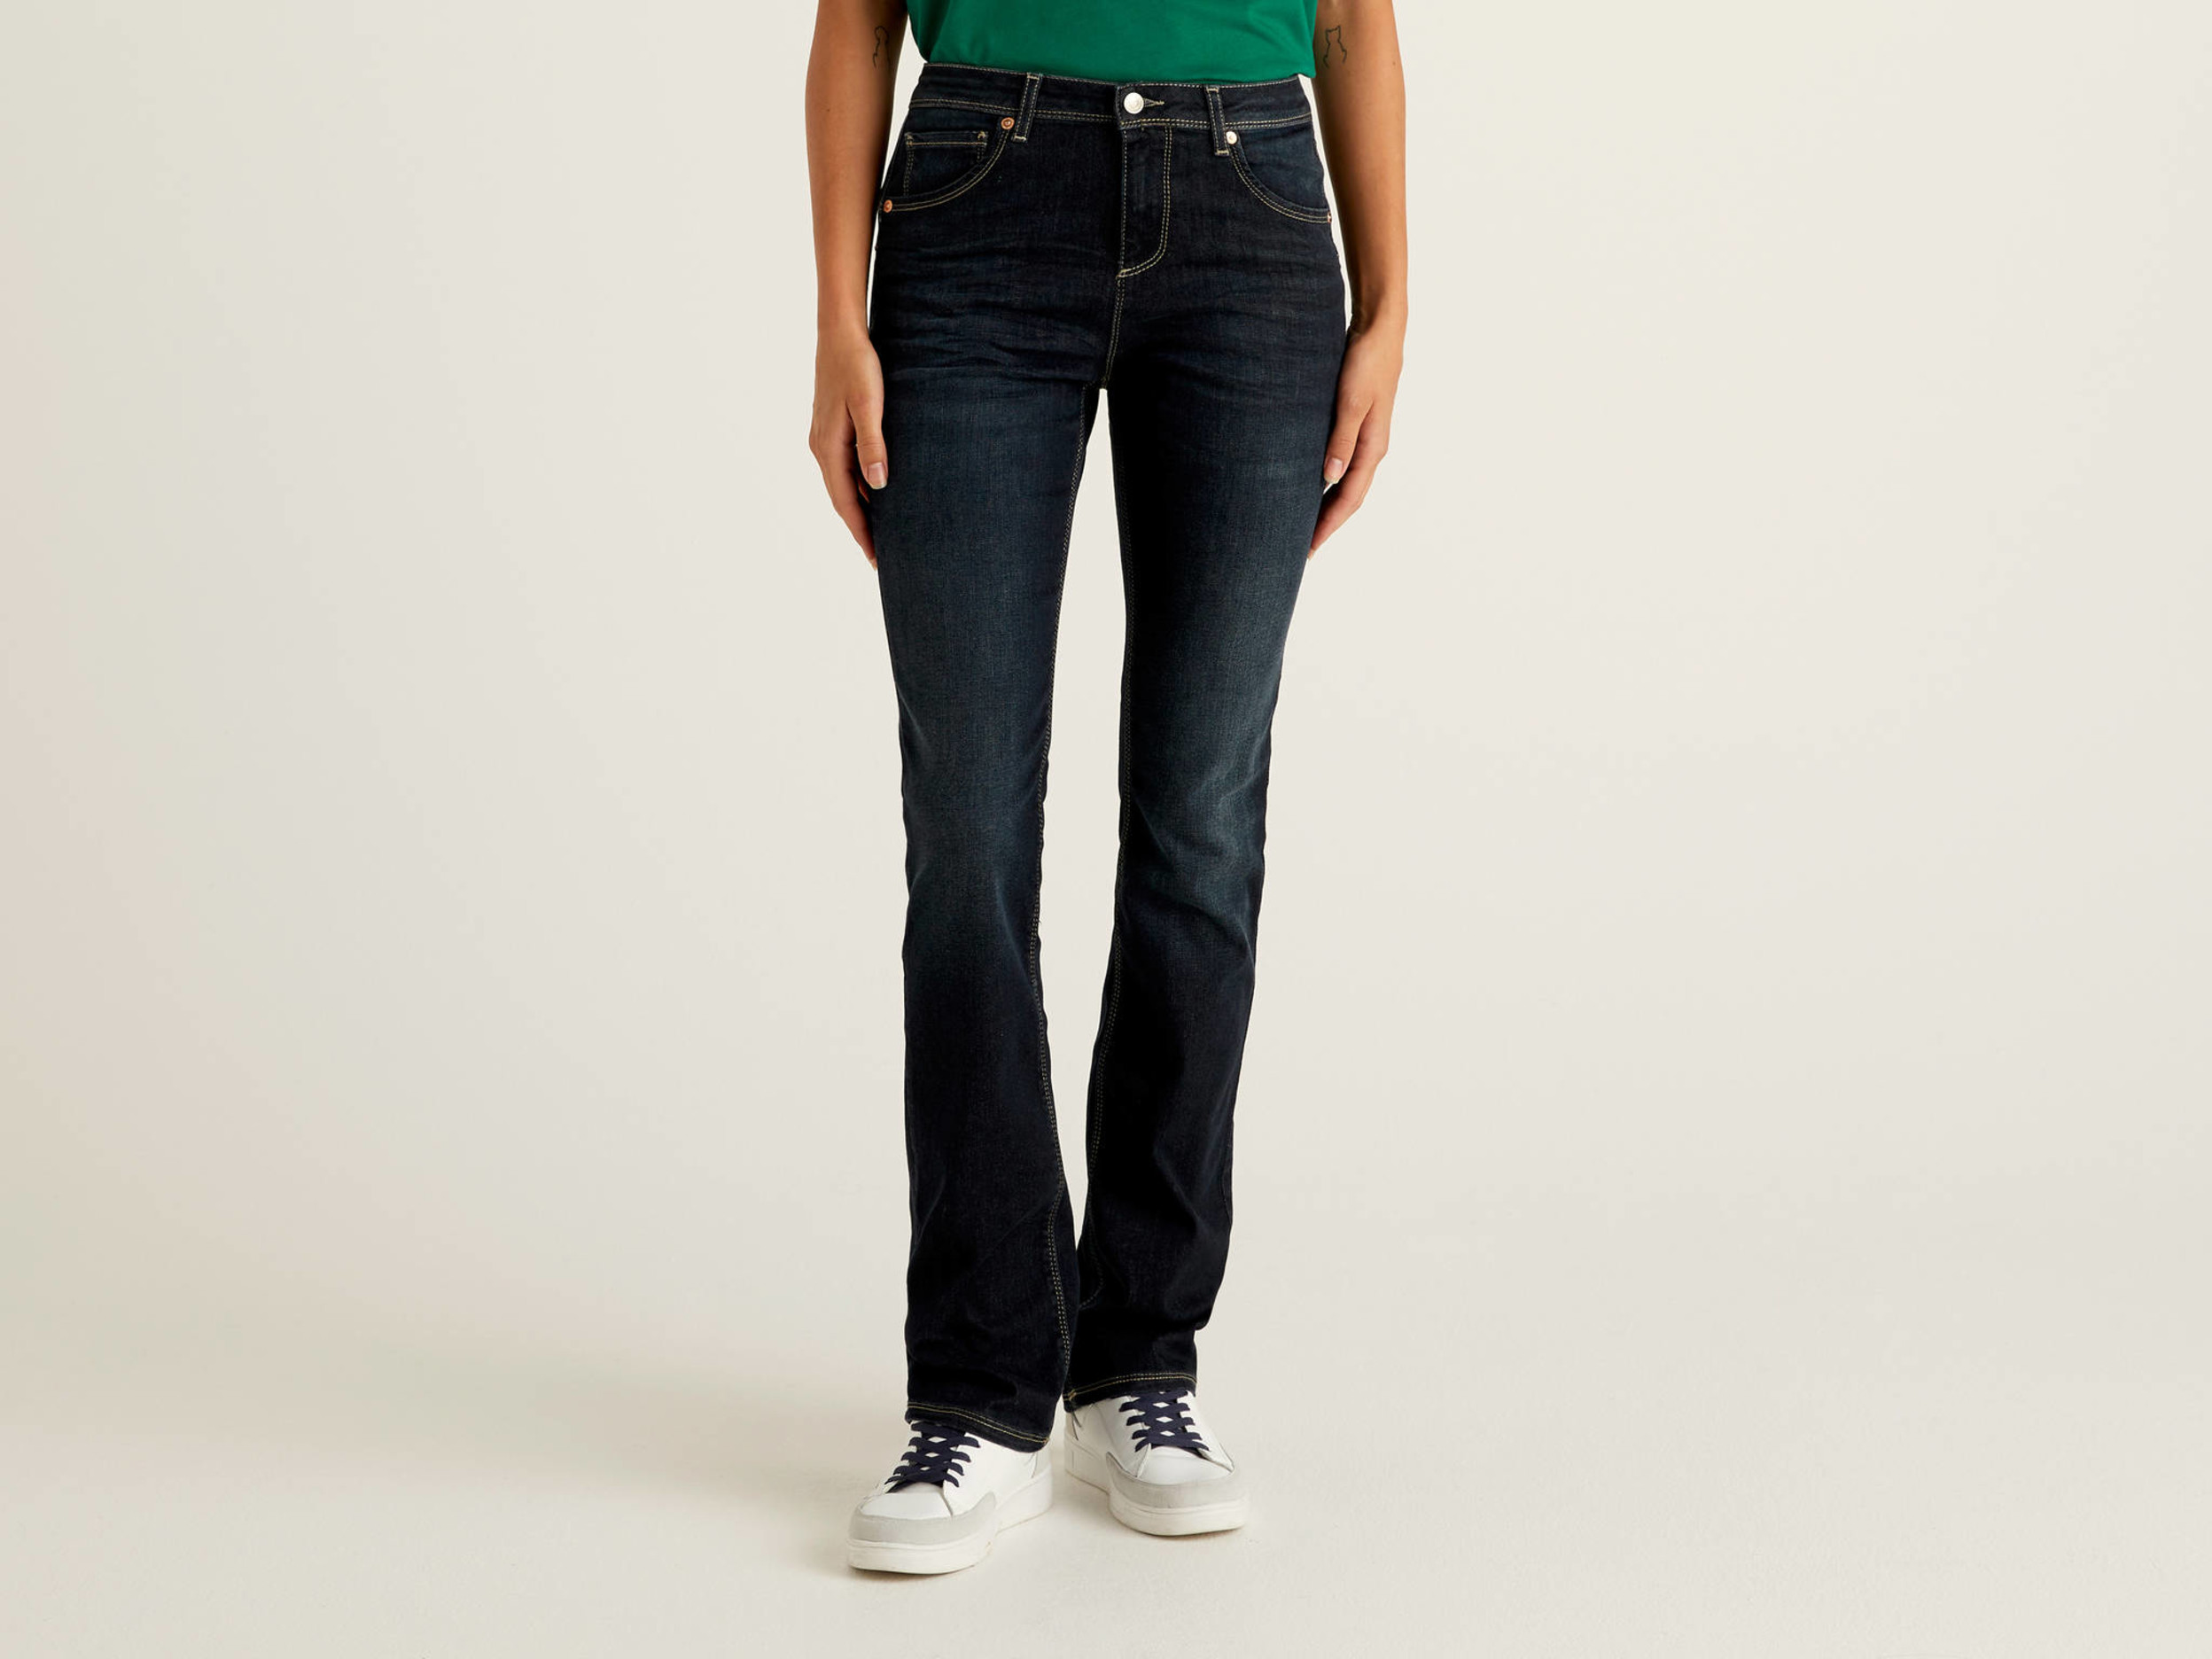 Benetton, Jeans Bootcut Push Up, Blu Scuro, Donna